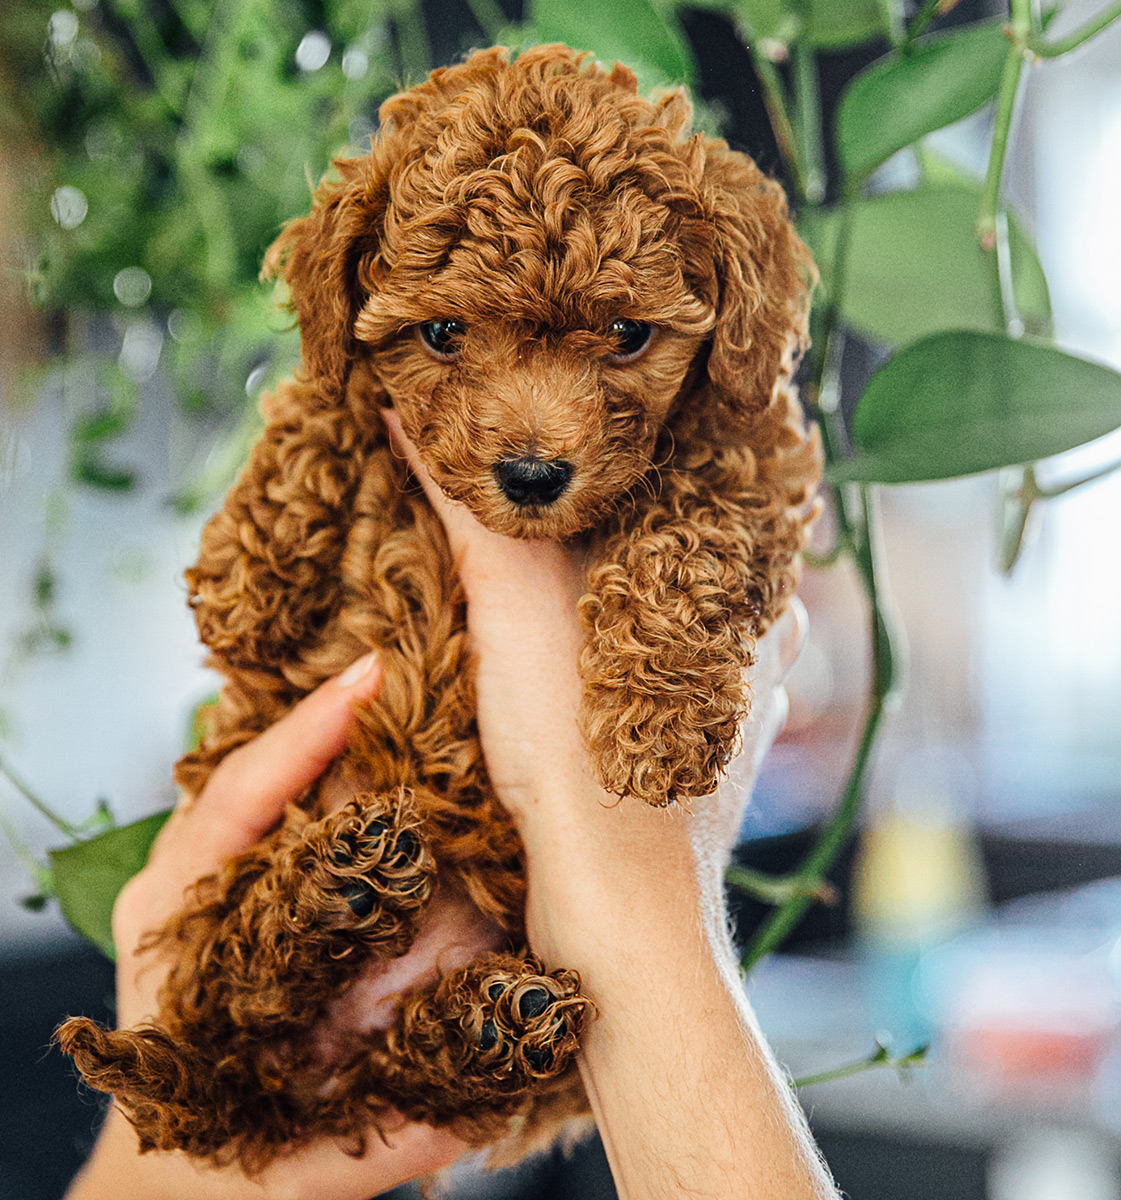 Cute Mini Goldendoodle puppy